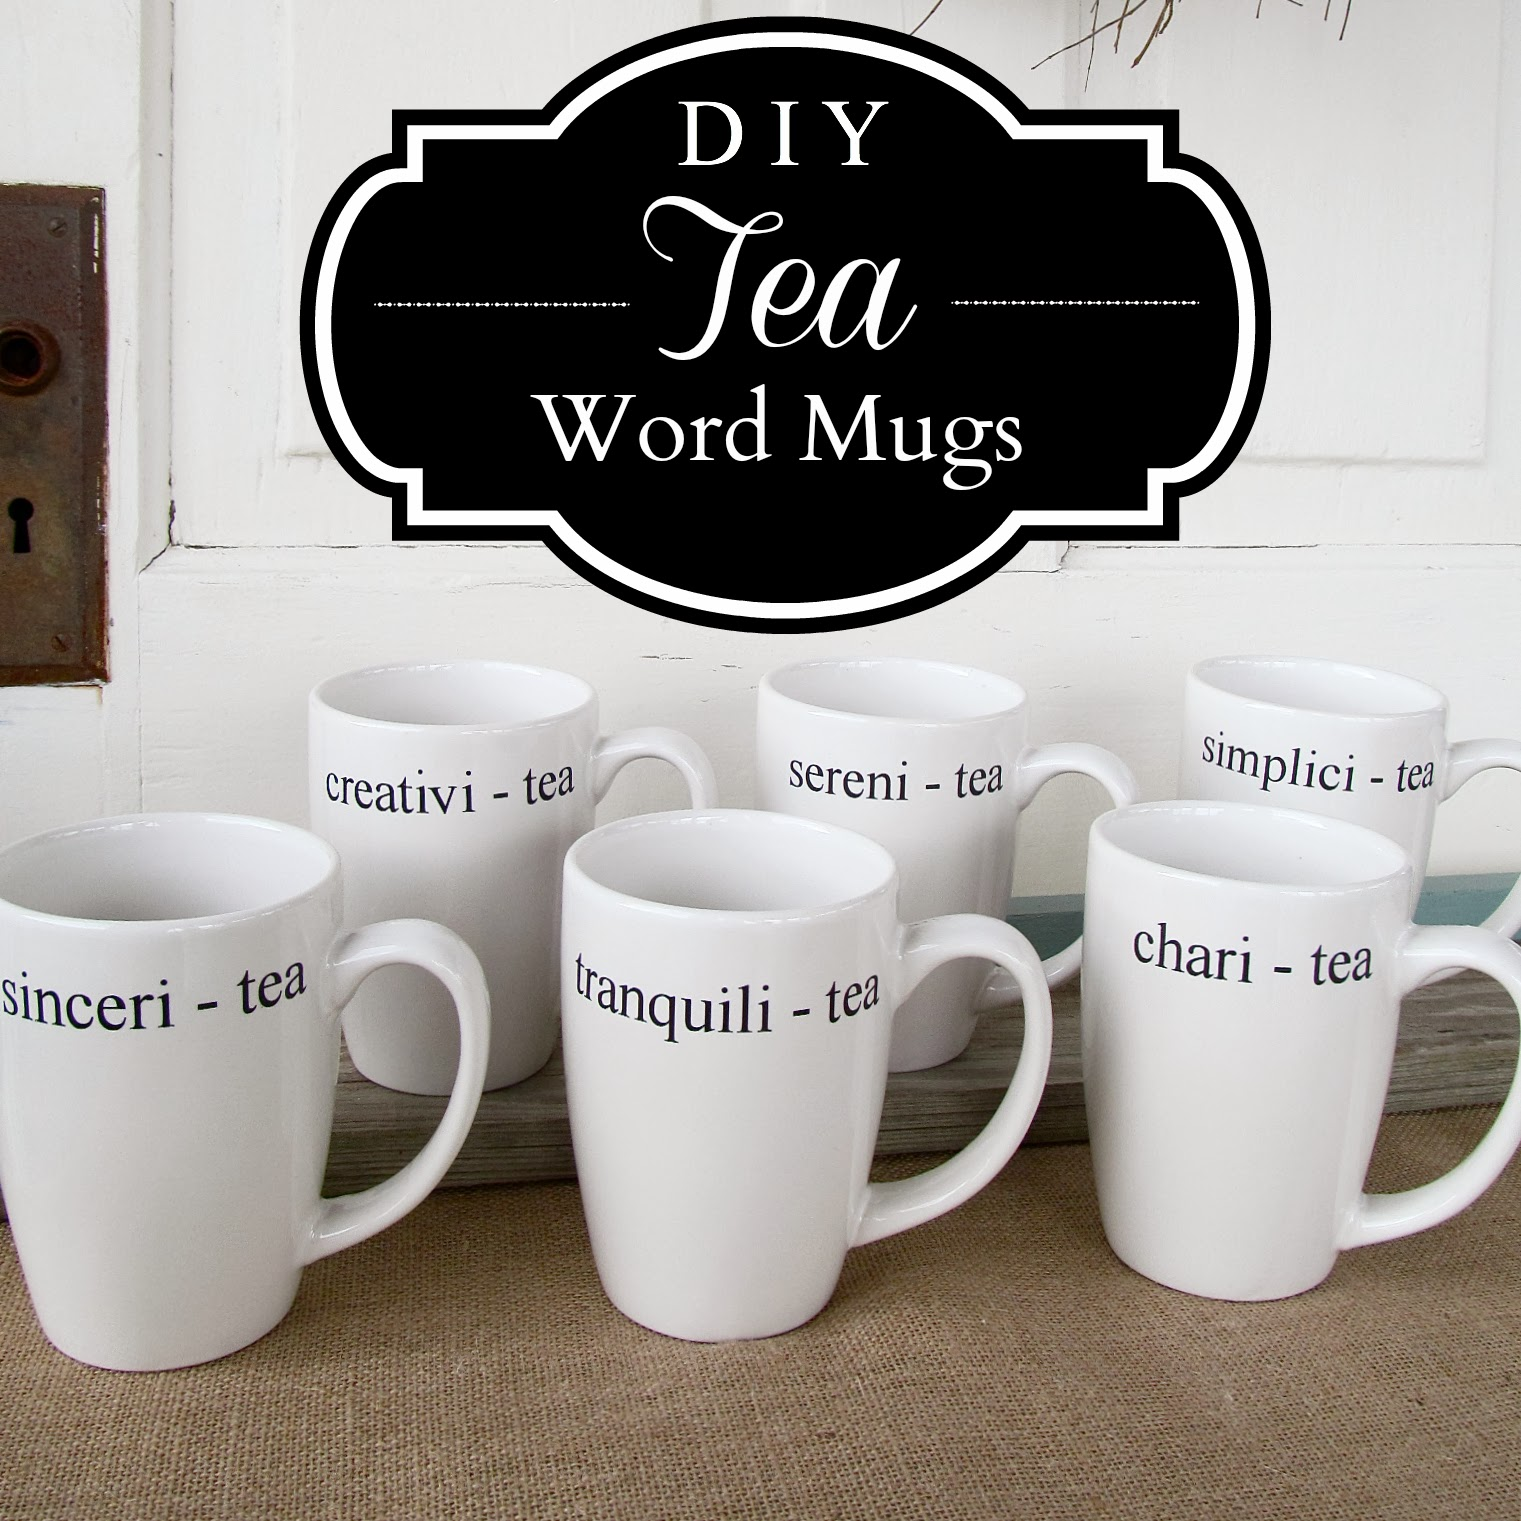 Inexpensive Mugs Diy Tea Mugs An Inexpensive Gift For Tea Lovers Hymns